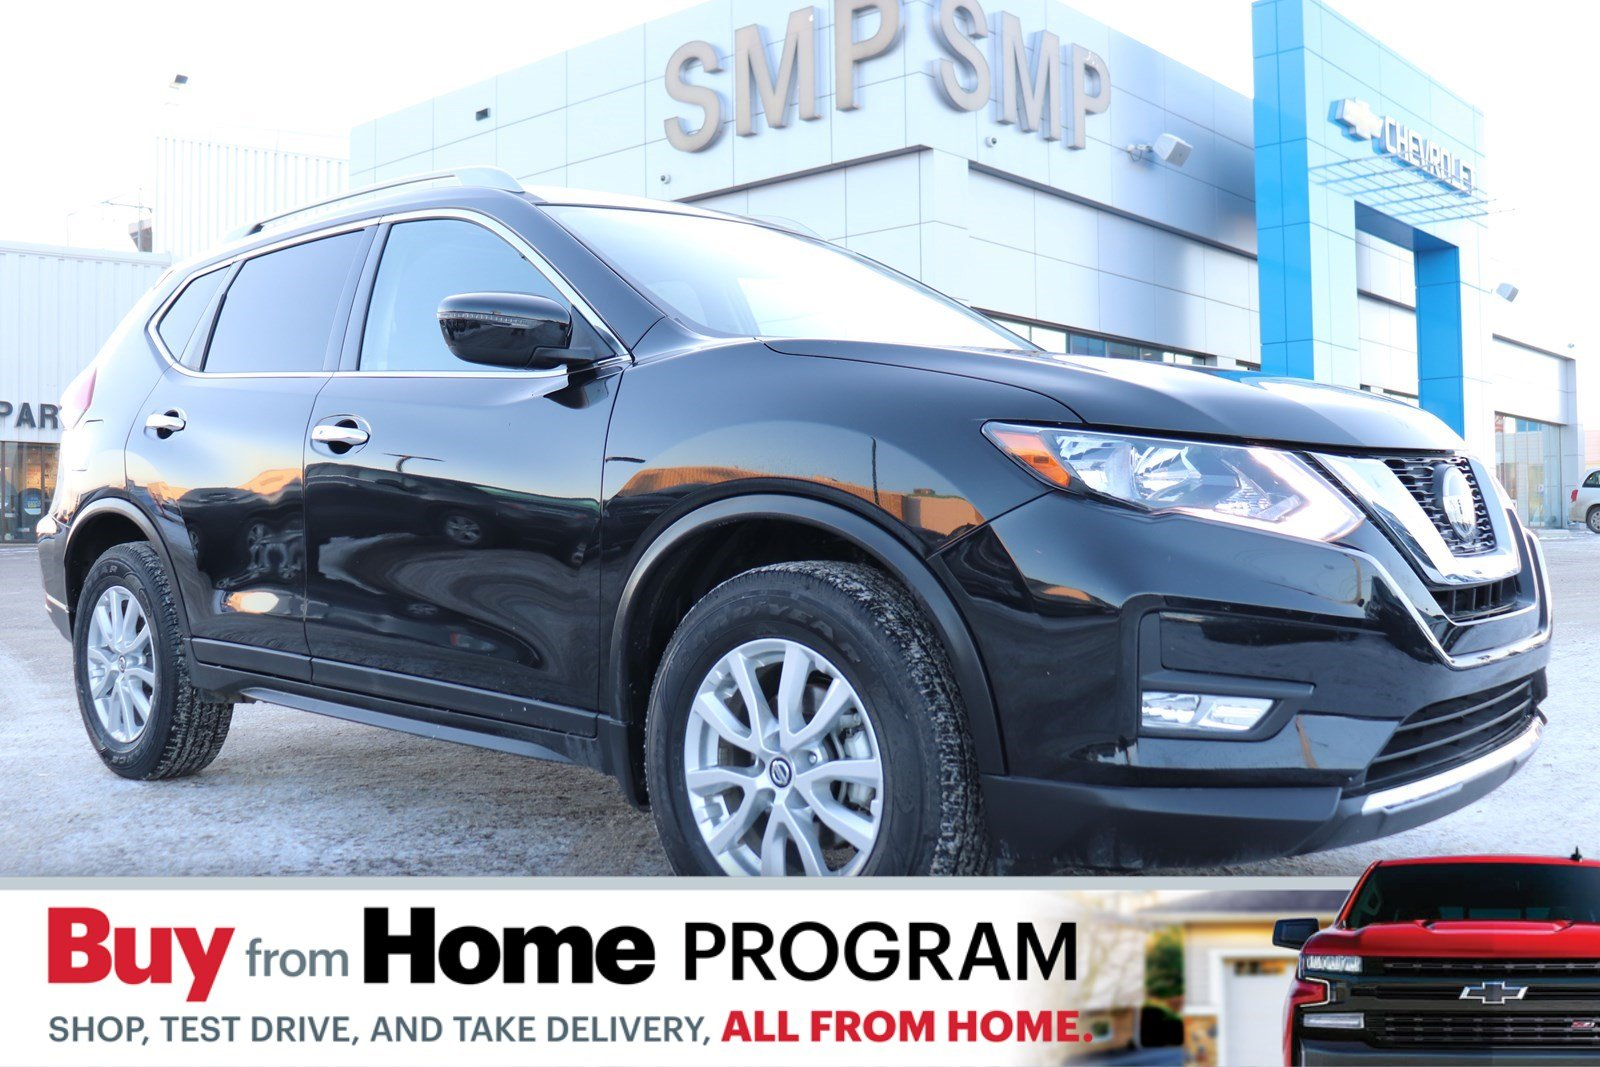 Certified Pre-Owned 2019 Nissan Rogue SV - Sunroof, Htd Seats, Remote Start, Back Up Camera